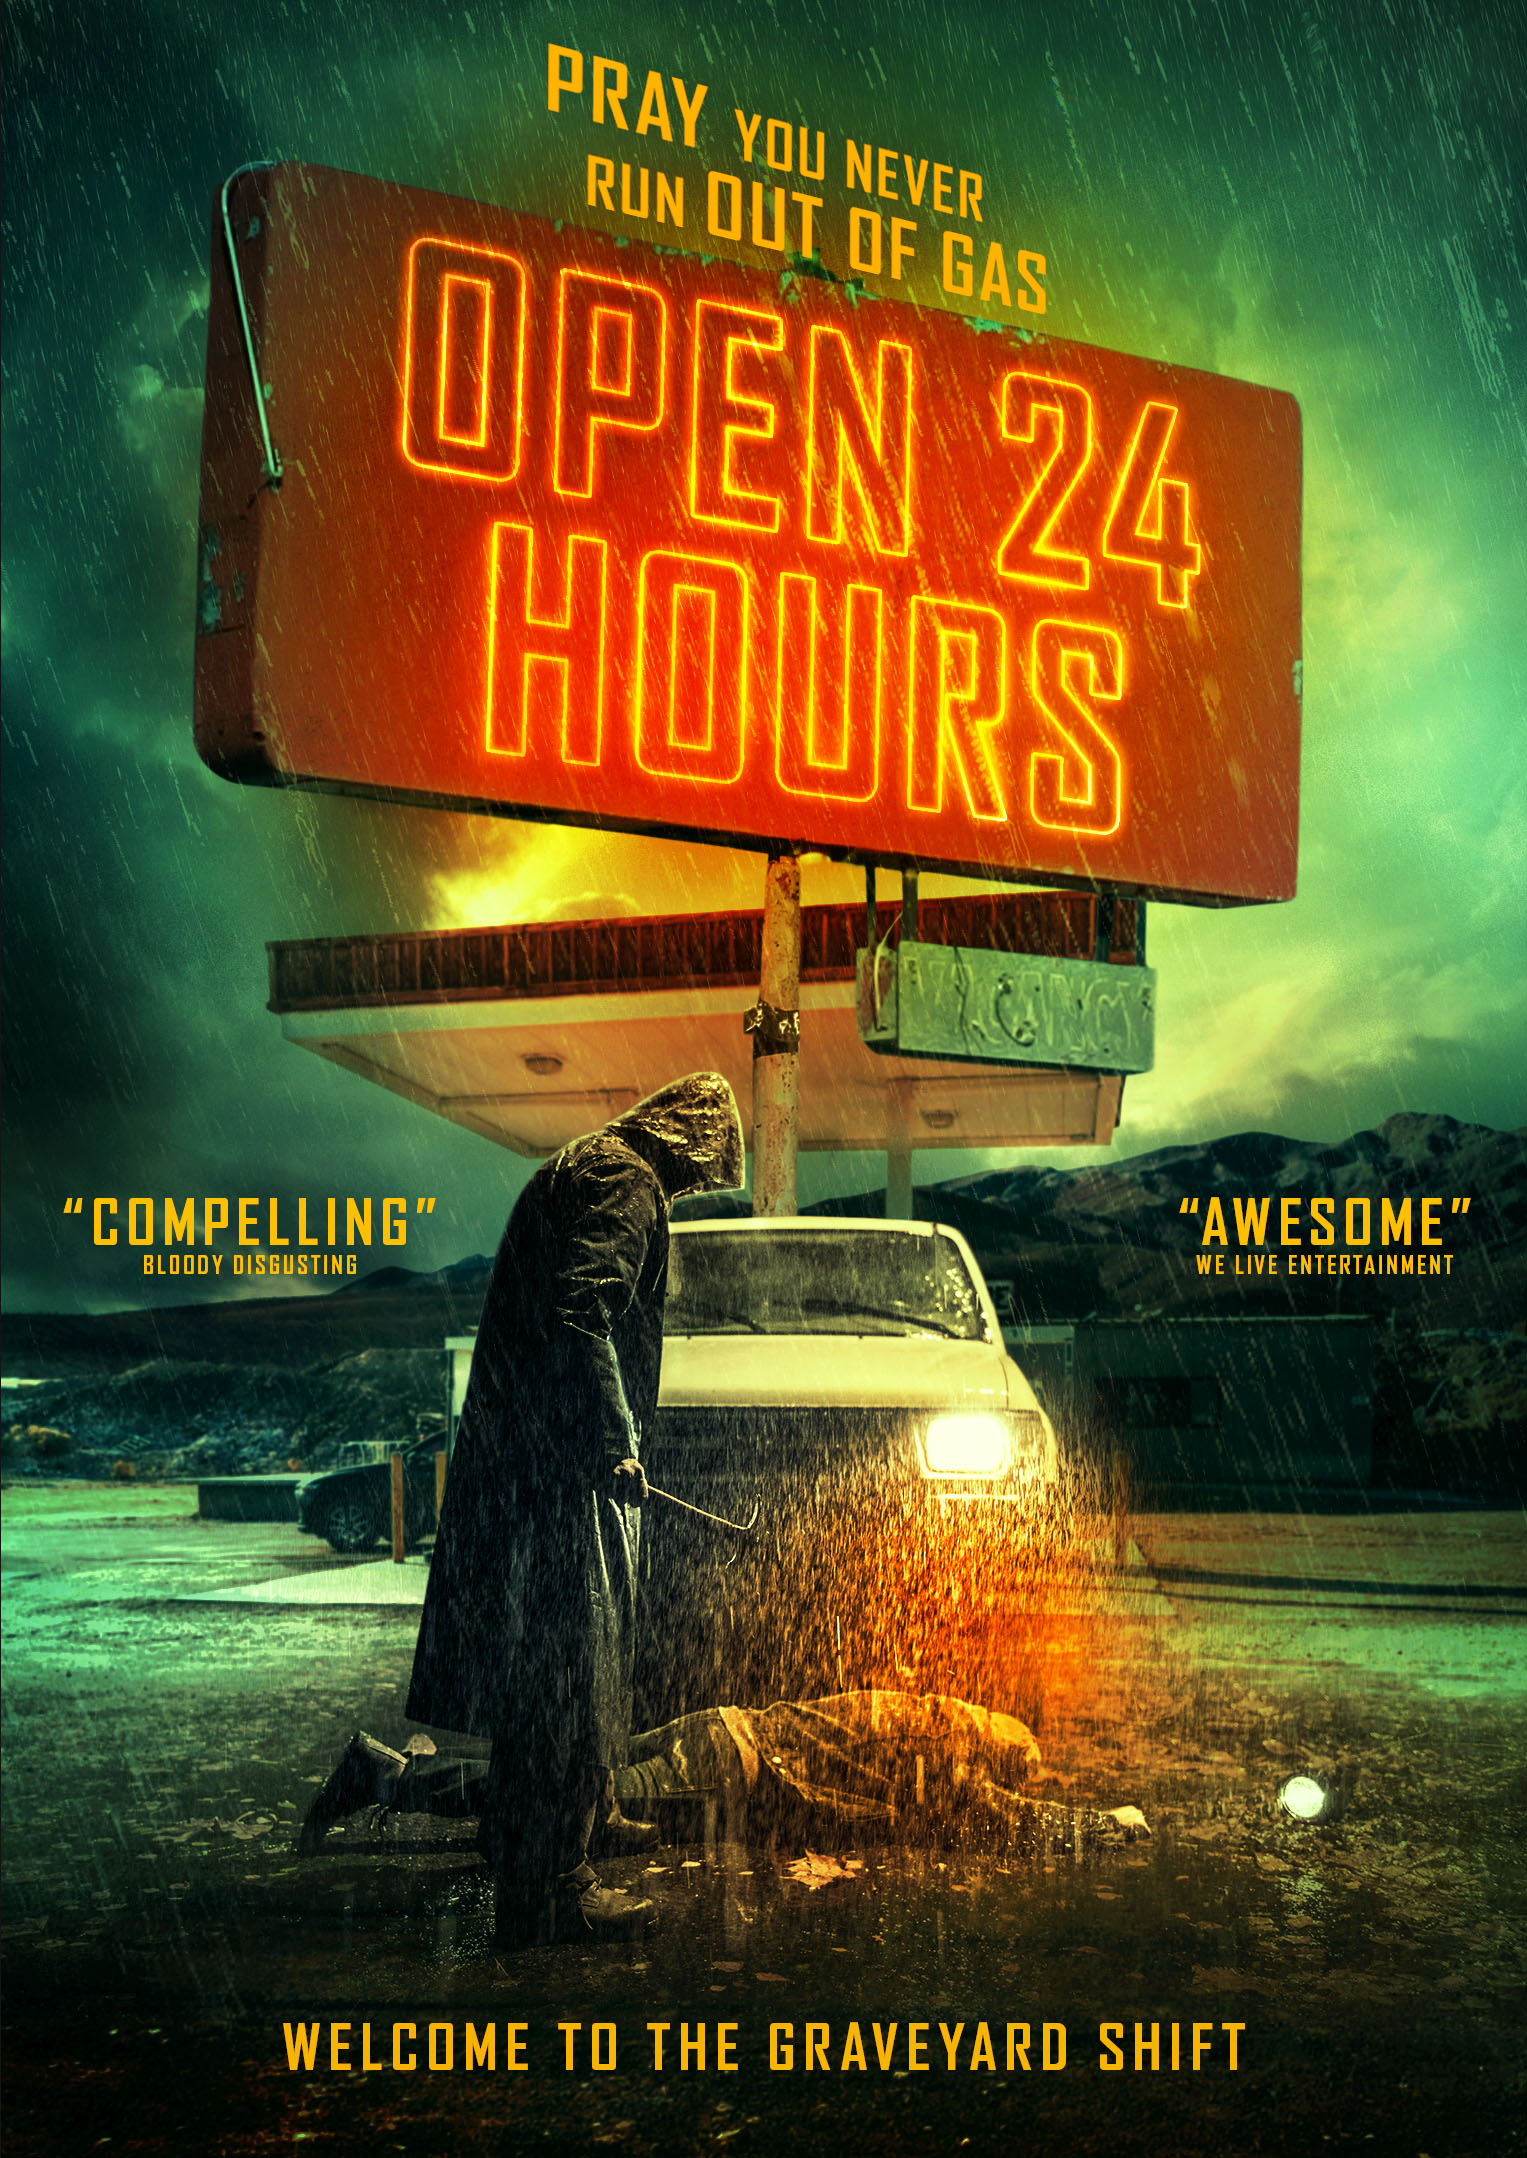 Alternate poster for OPEN 24 HOURS